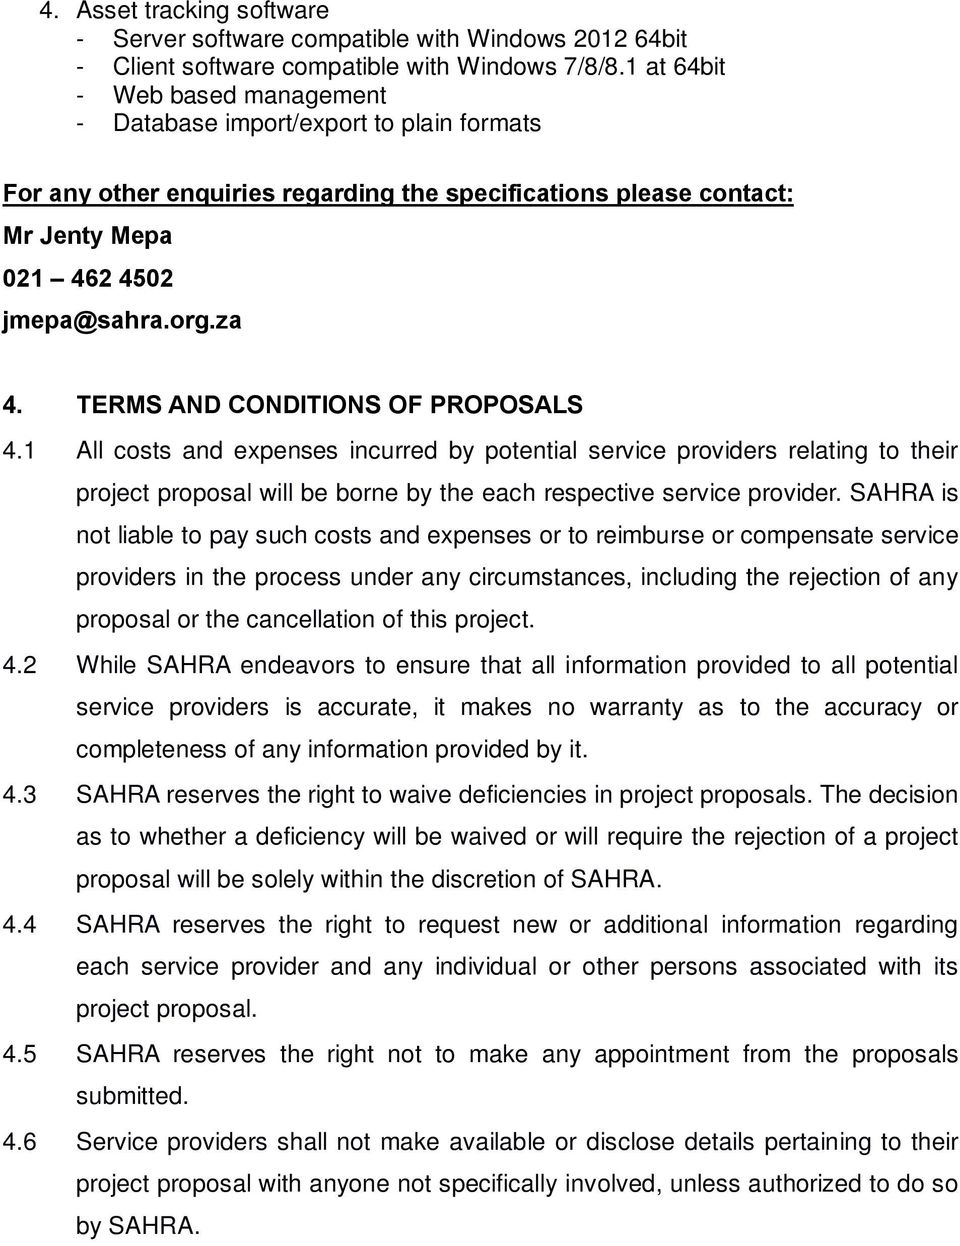 TERMS AND CONDITIONS OF PROPOSALS 4.1 All costs and expenses incurred by potential service providers relating to their project proposal will be borne by the each respective service provider.